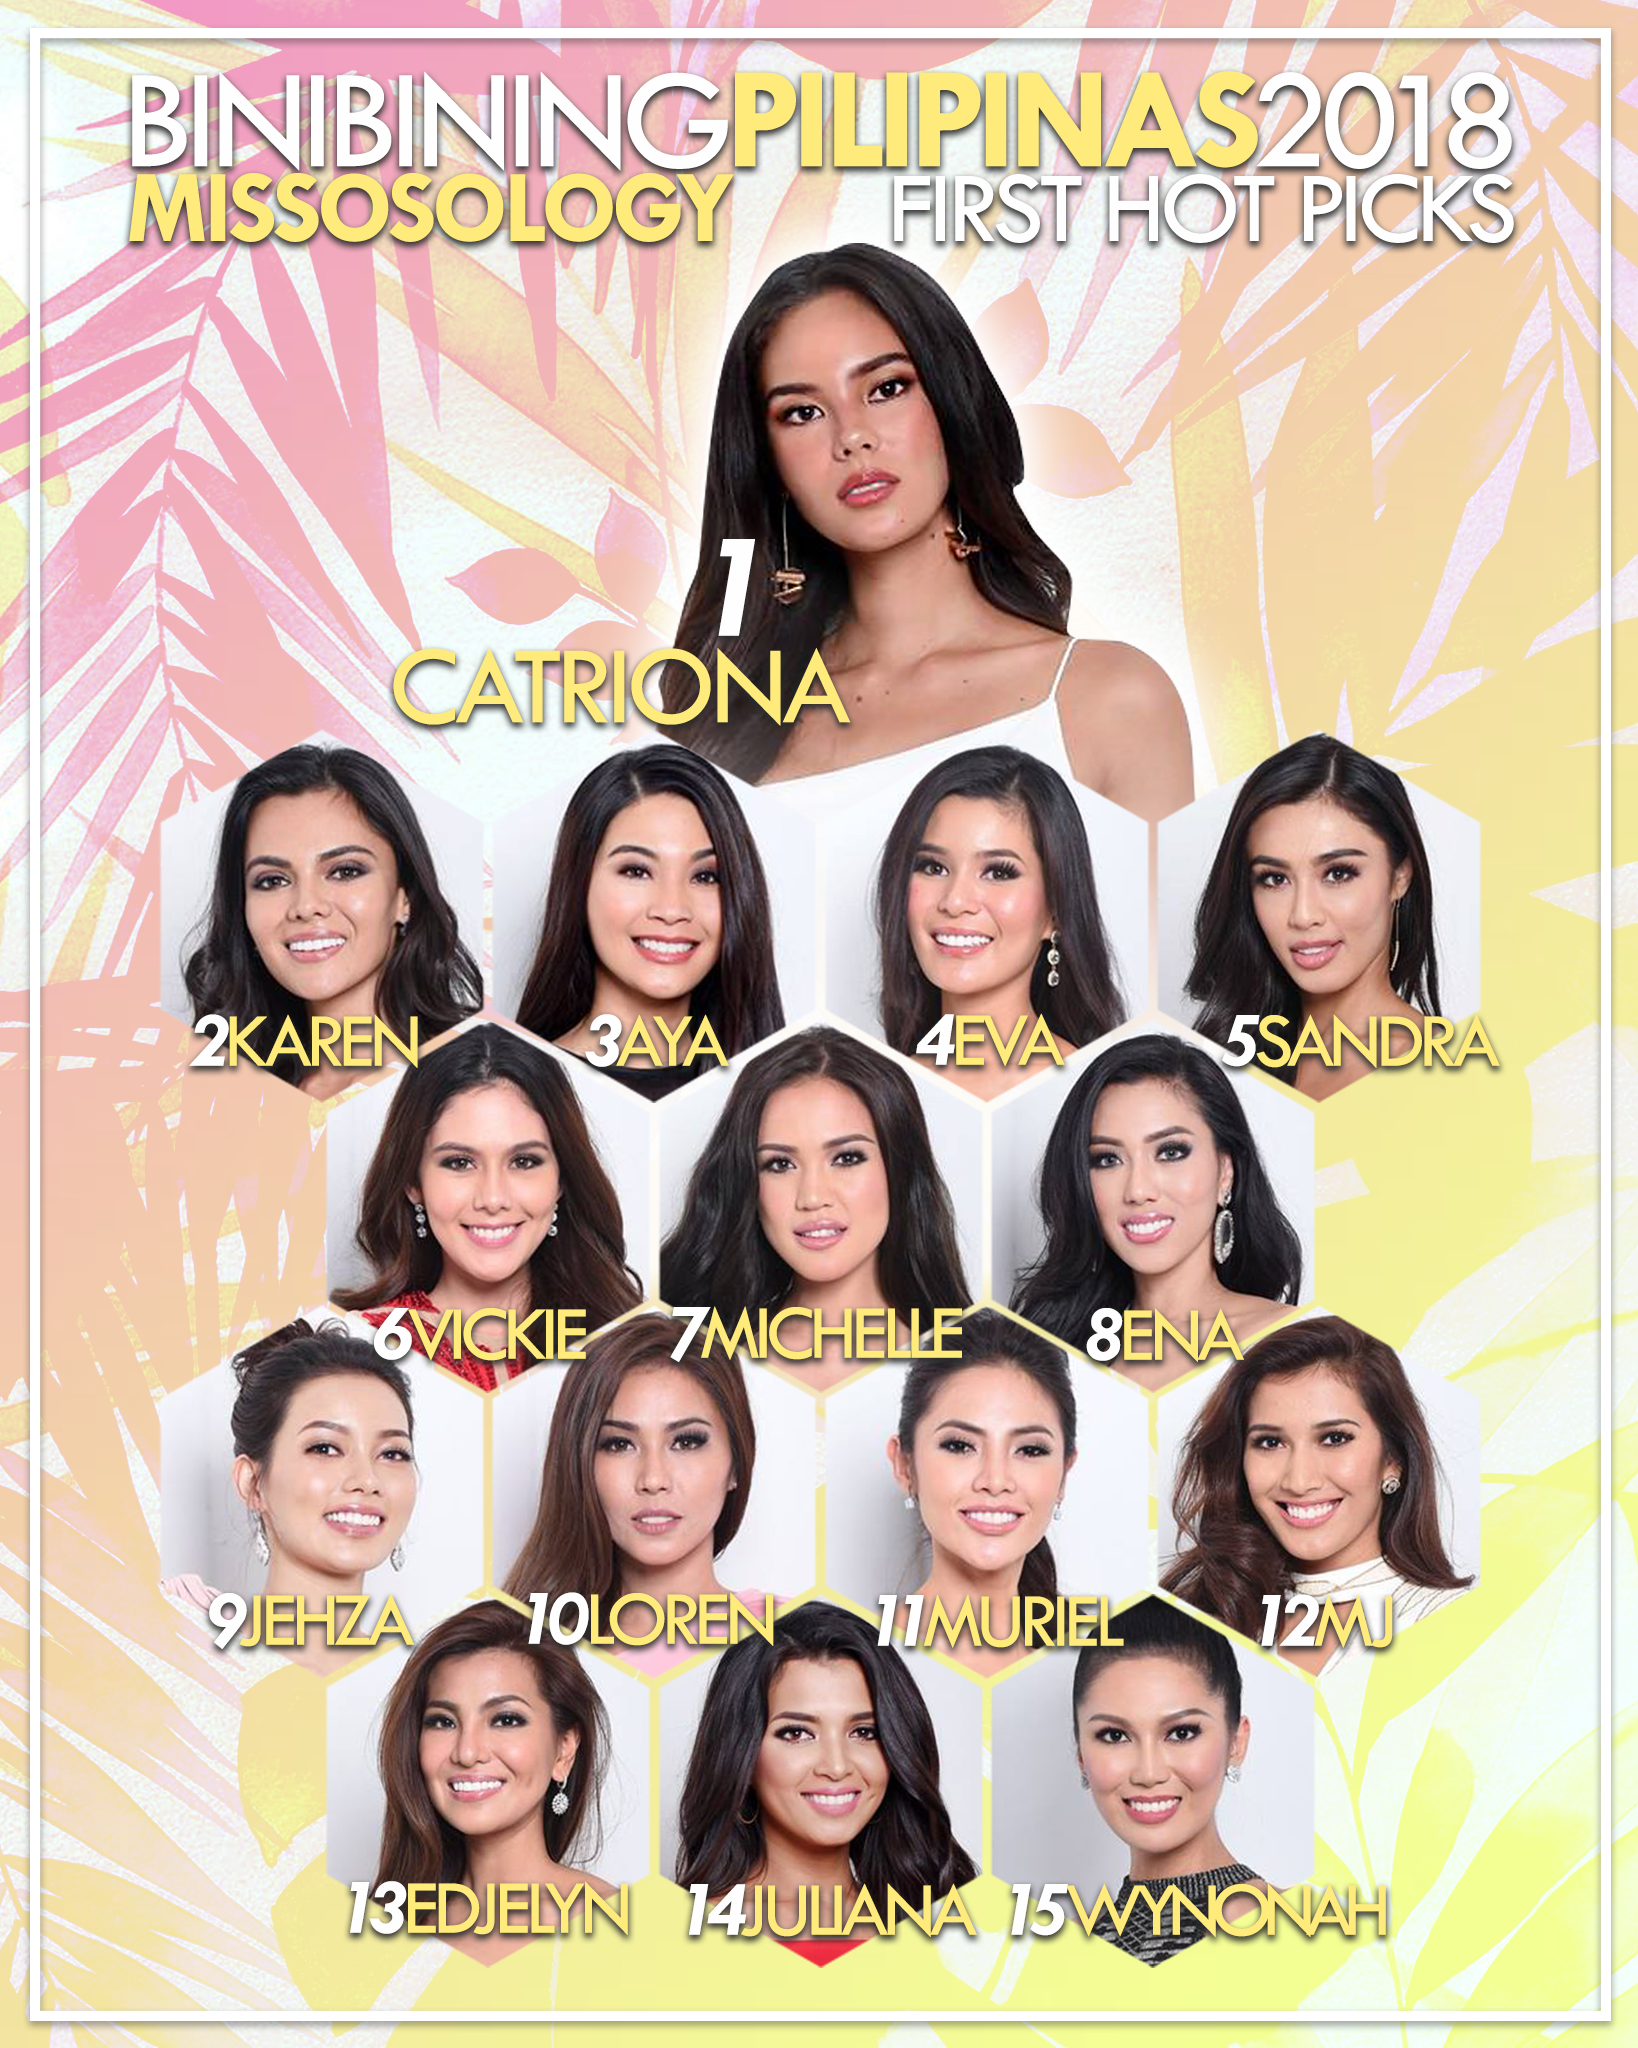 Bb Pilipinas 2018 First Hot Picks by Missosology